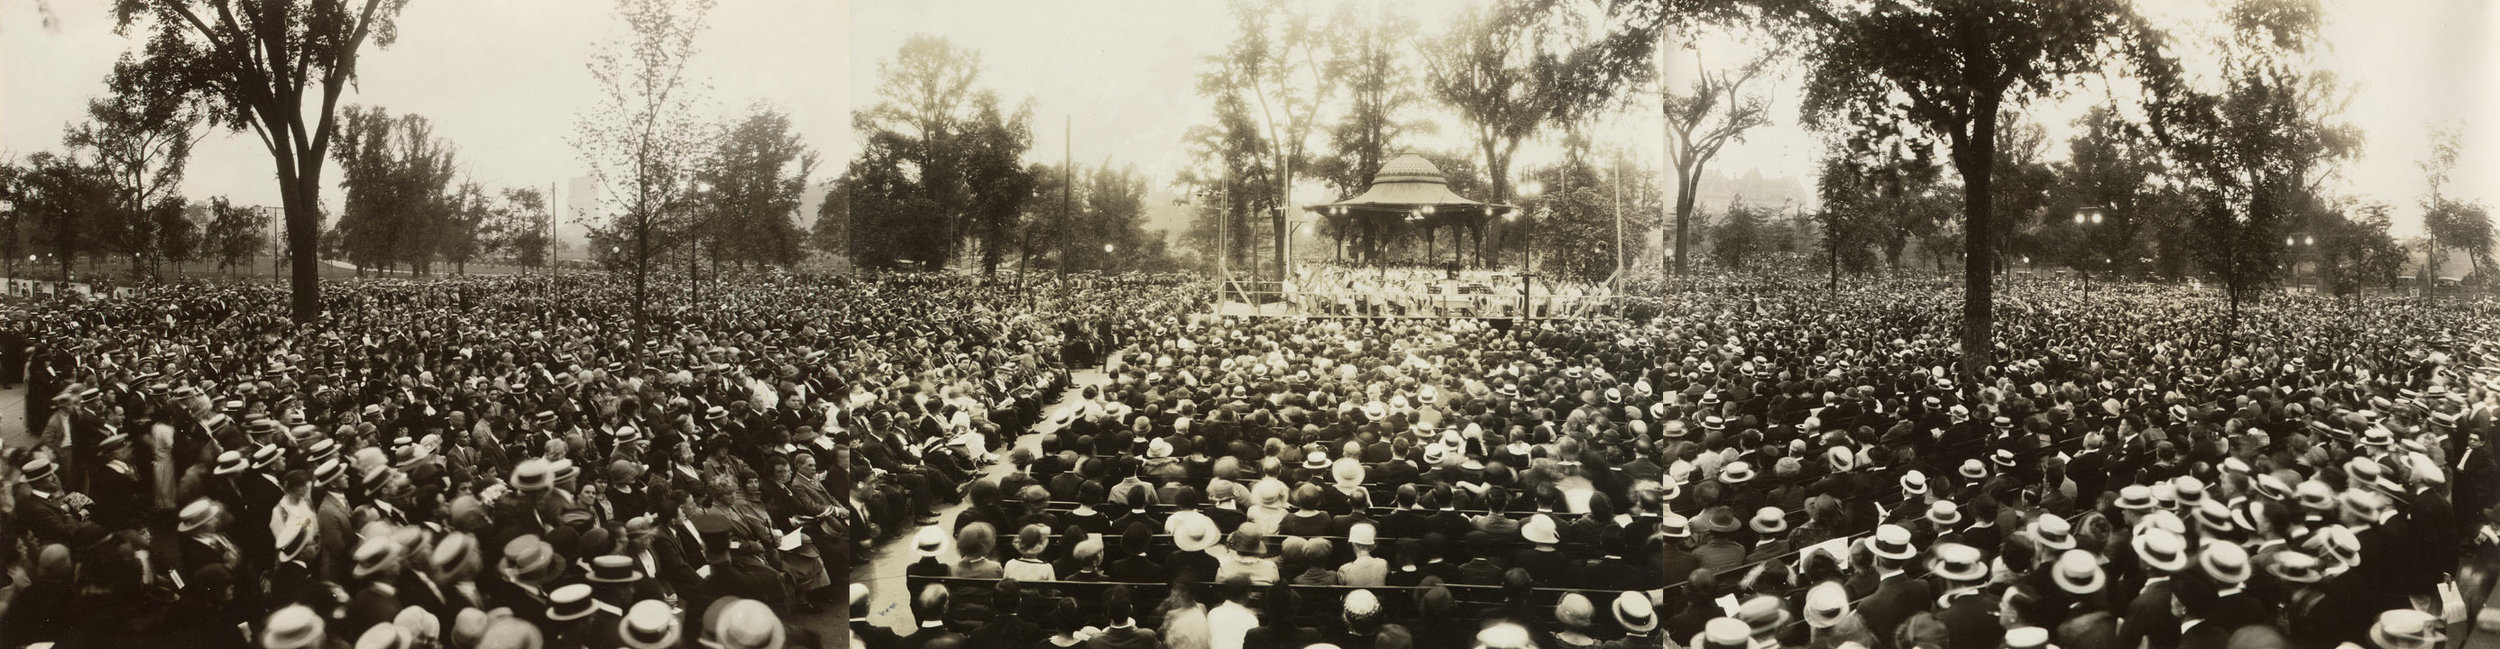 Large crowds gather to enjoy a concert in the park, c. 1910. The bench seating was designed by Calvert Vaux especially for concert-goers around the Music Pavilion. Photo by A. Tennyson Beals, NYC Municipal Archives Collection.